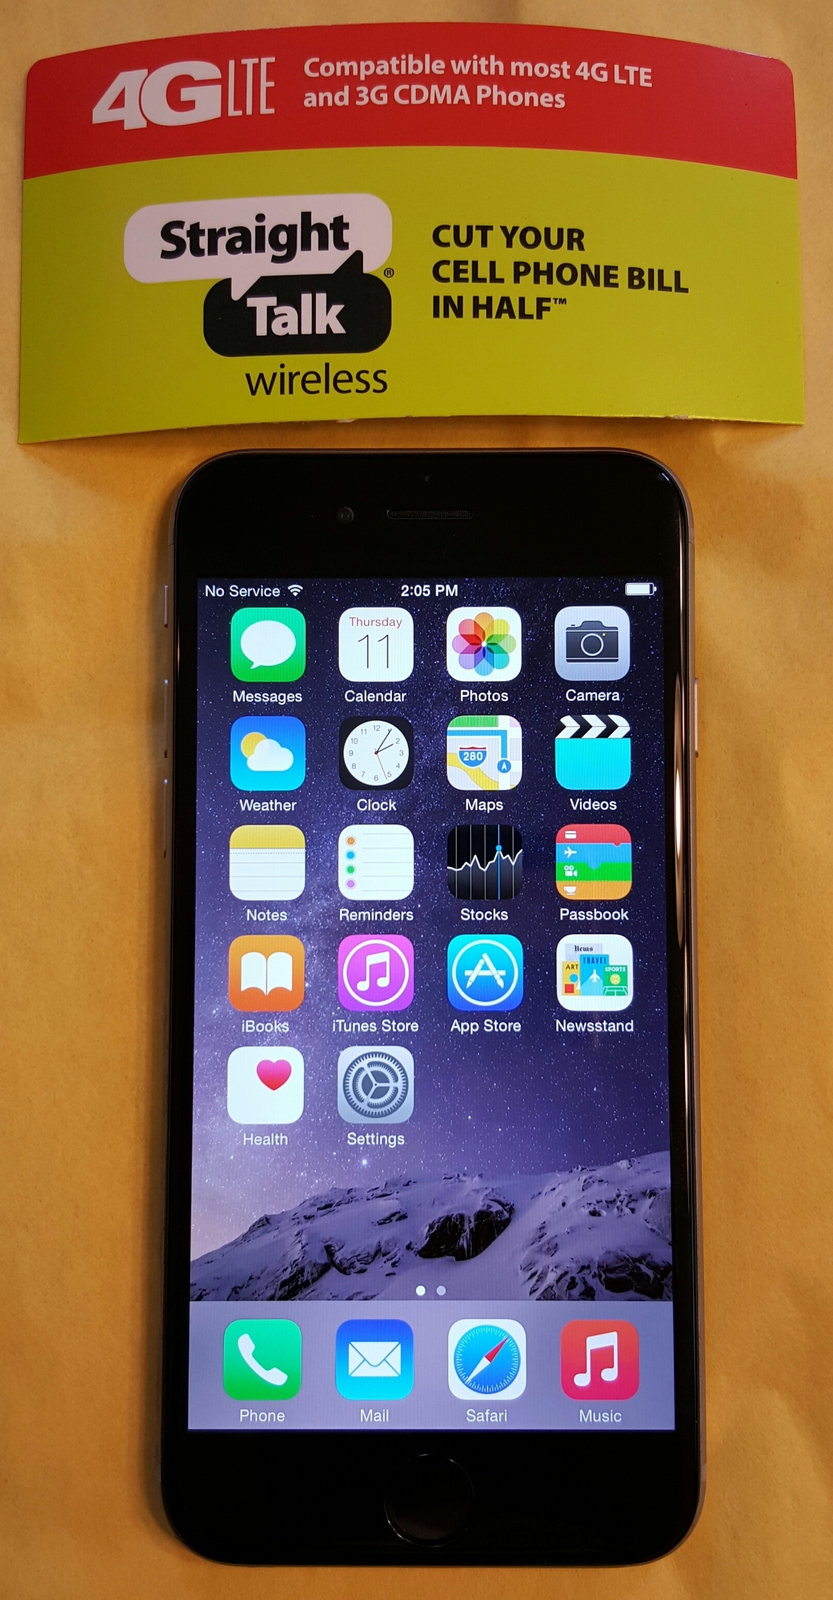 straight talk iphone 6 iphone 6 gray 16gb for staight talk at amp t 4g lte 16204